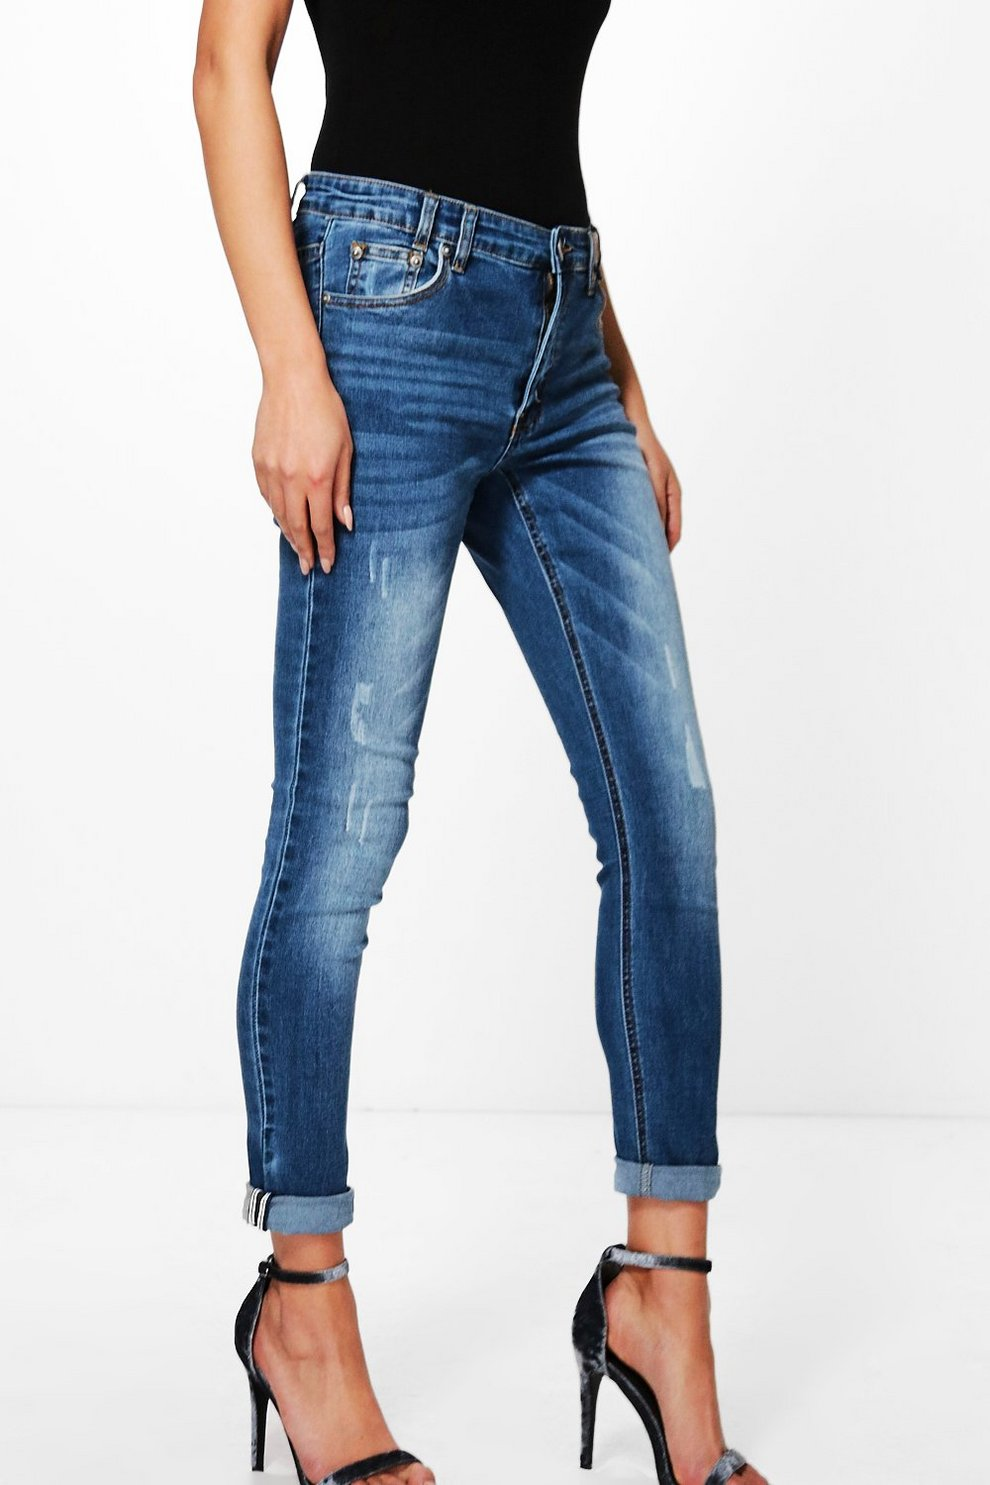 497d73e92801 Allie Mid Rise Selvedge Turn Up Skinny Jeans | Boohoo